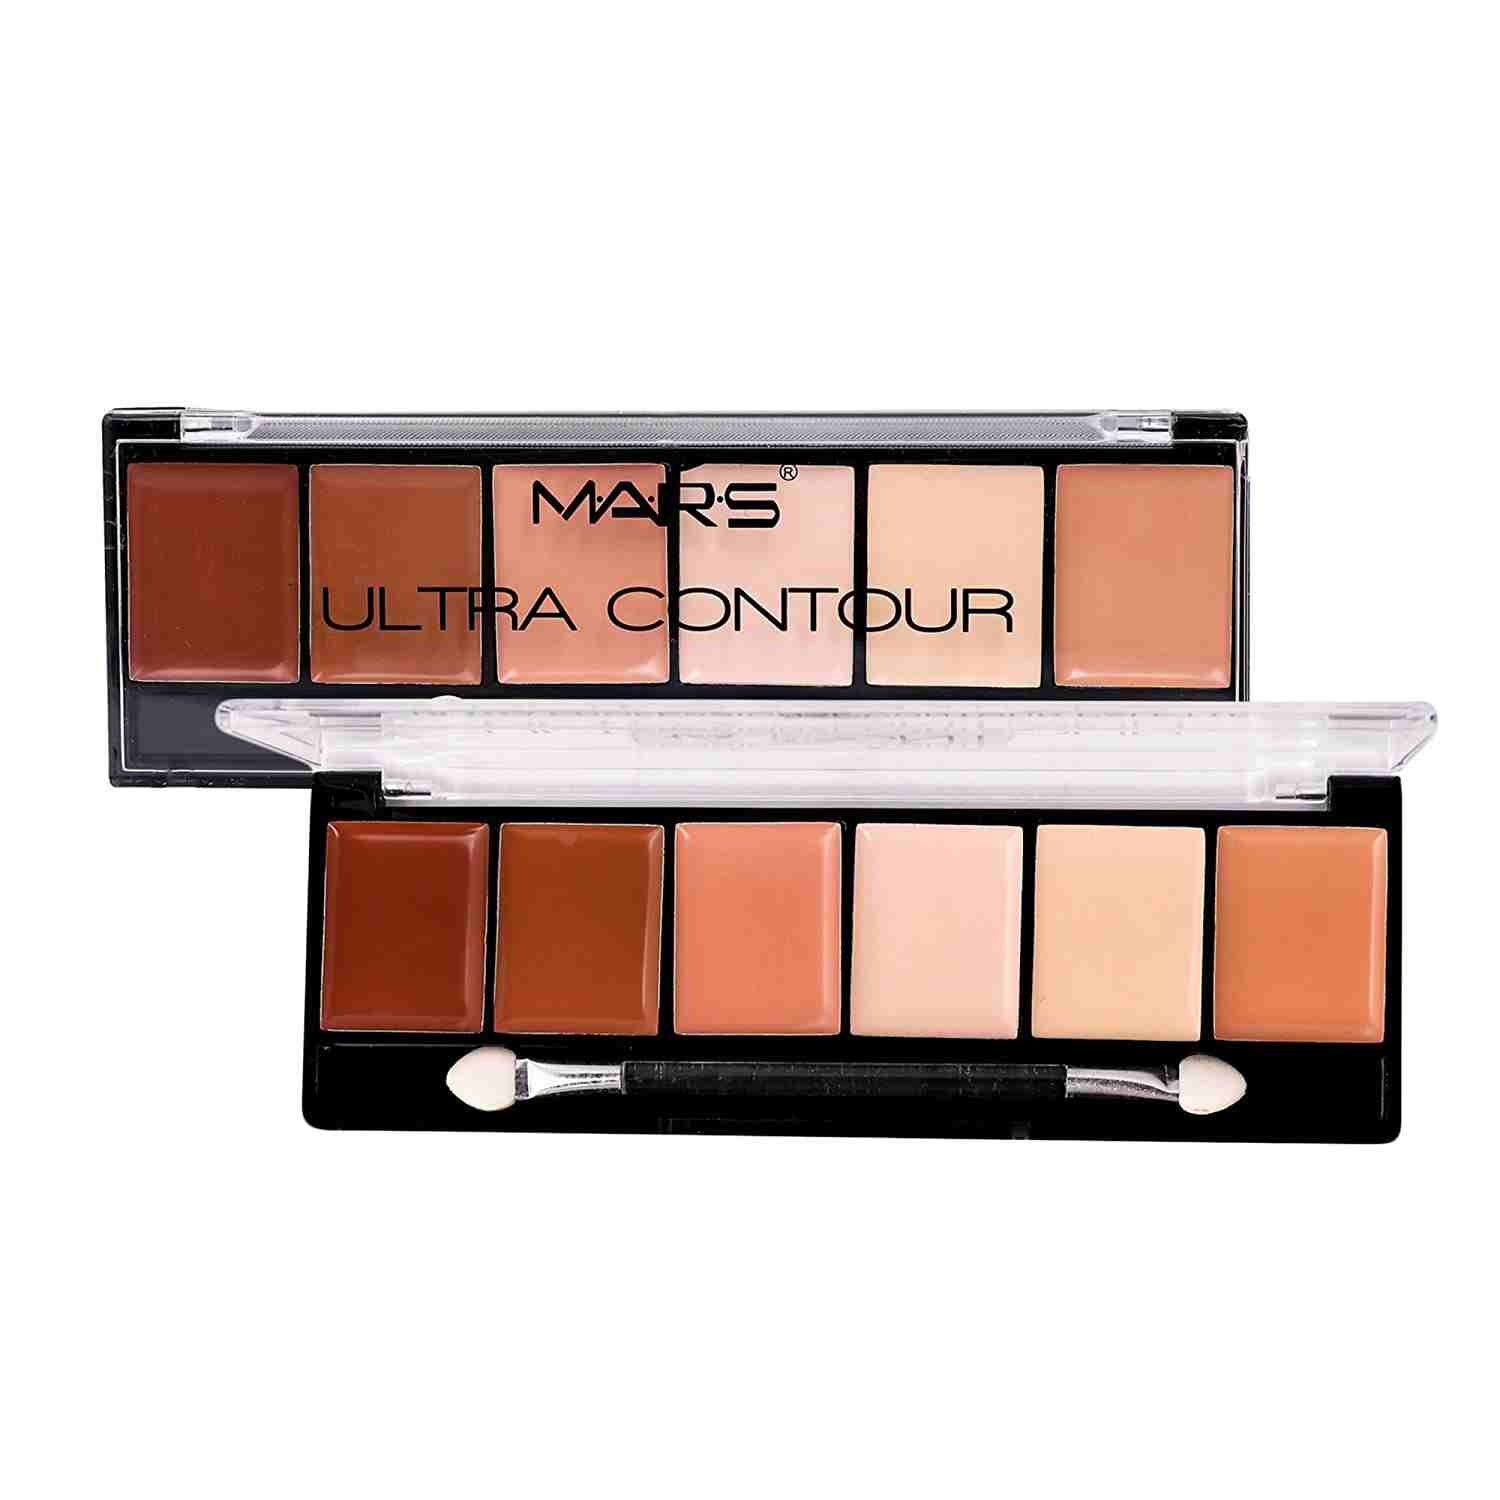 Mars Ultra Mineral Contour Palette Bright Glow